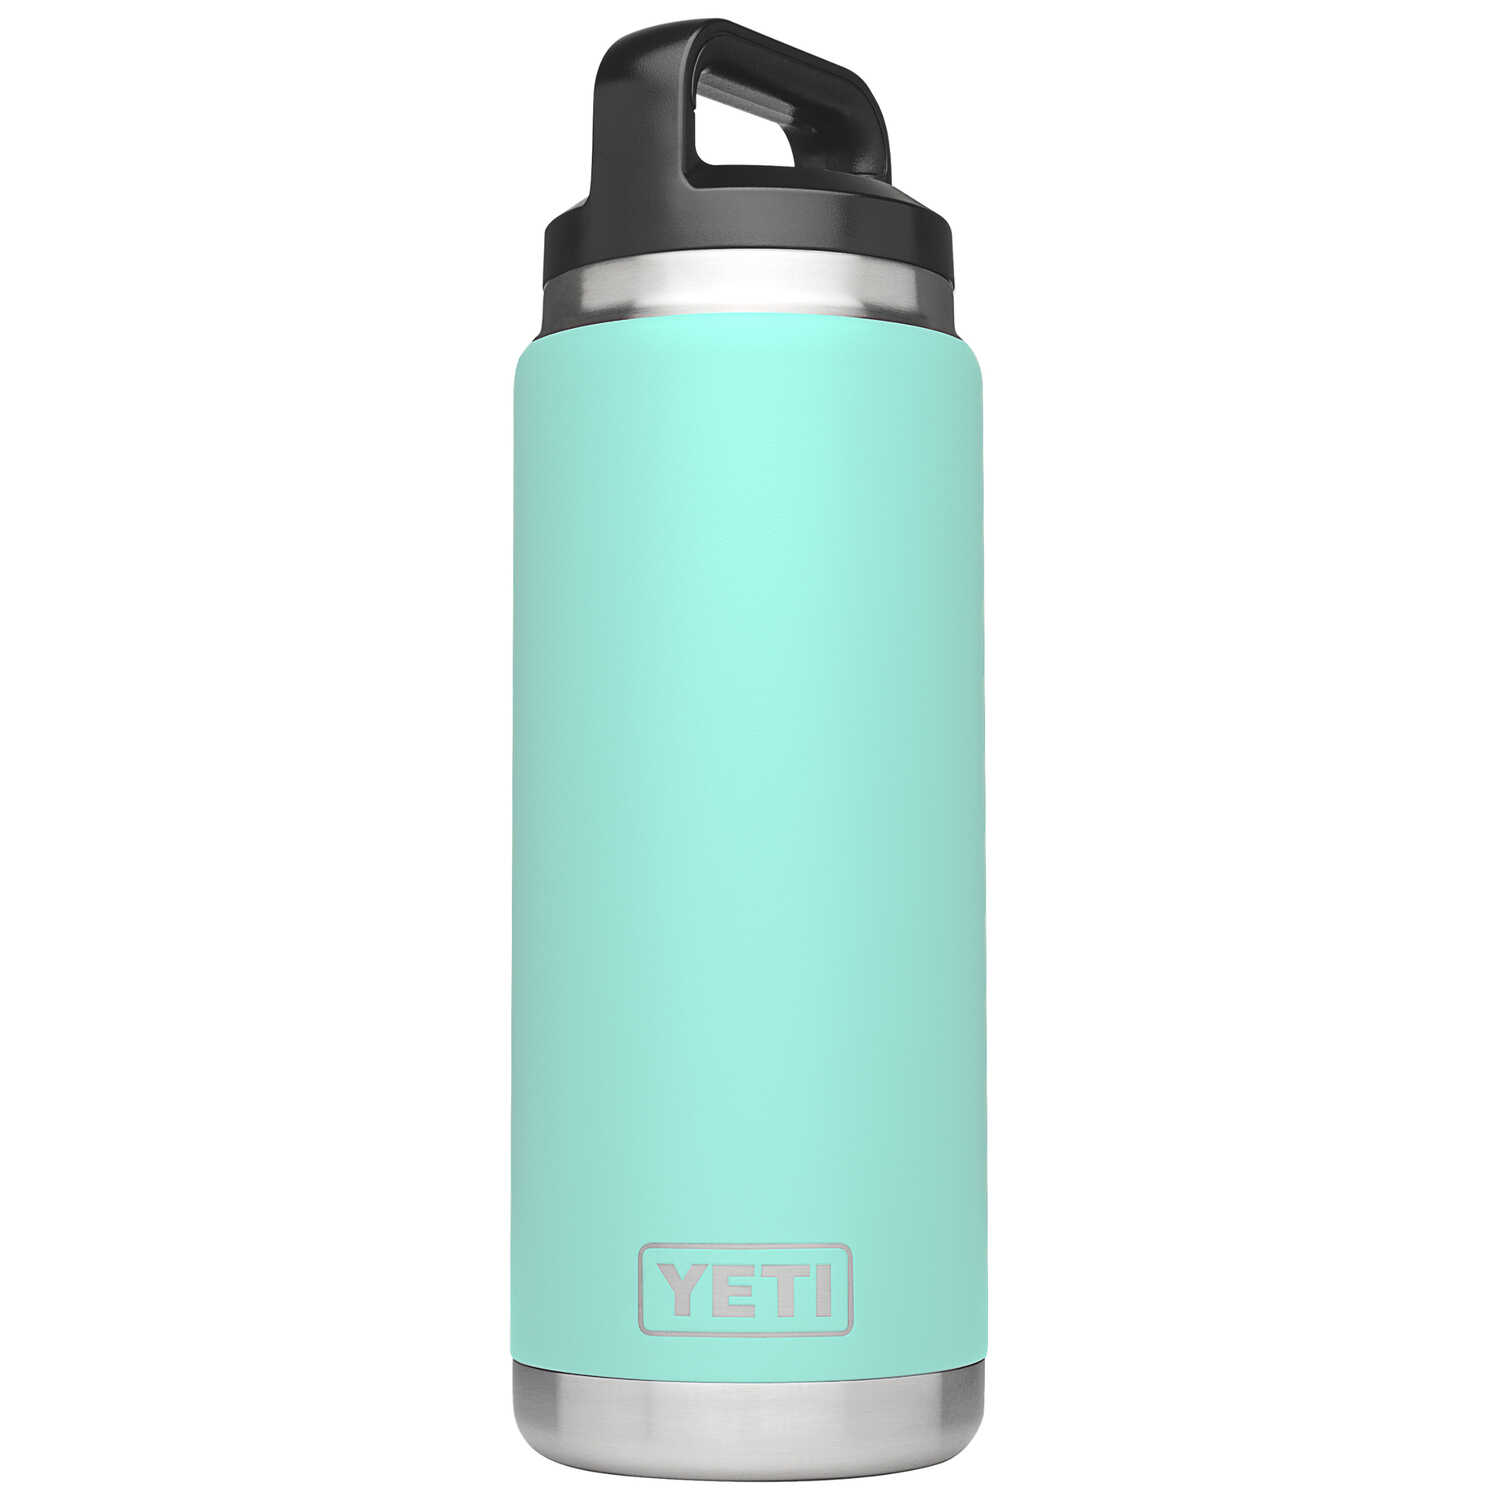 YETI  Rambler  Seafoam Green  Insulated Bottle  BPA Free 26 oz. Stainless Steel